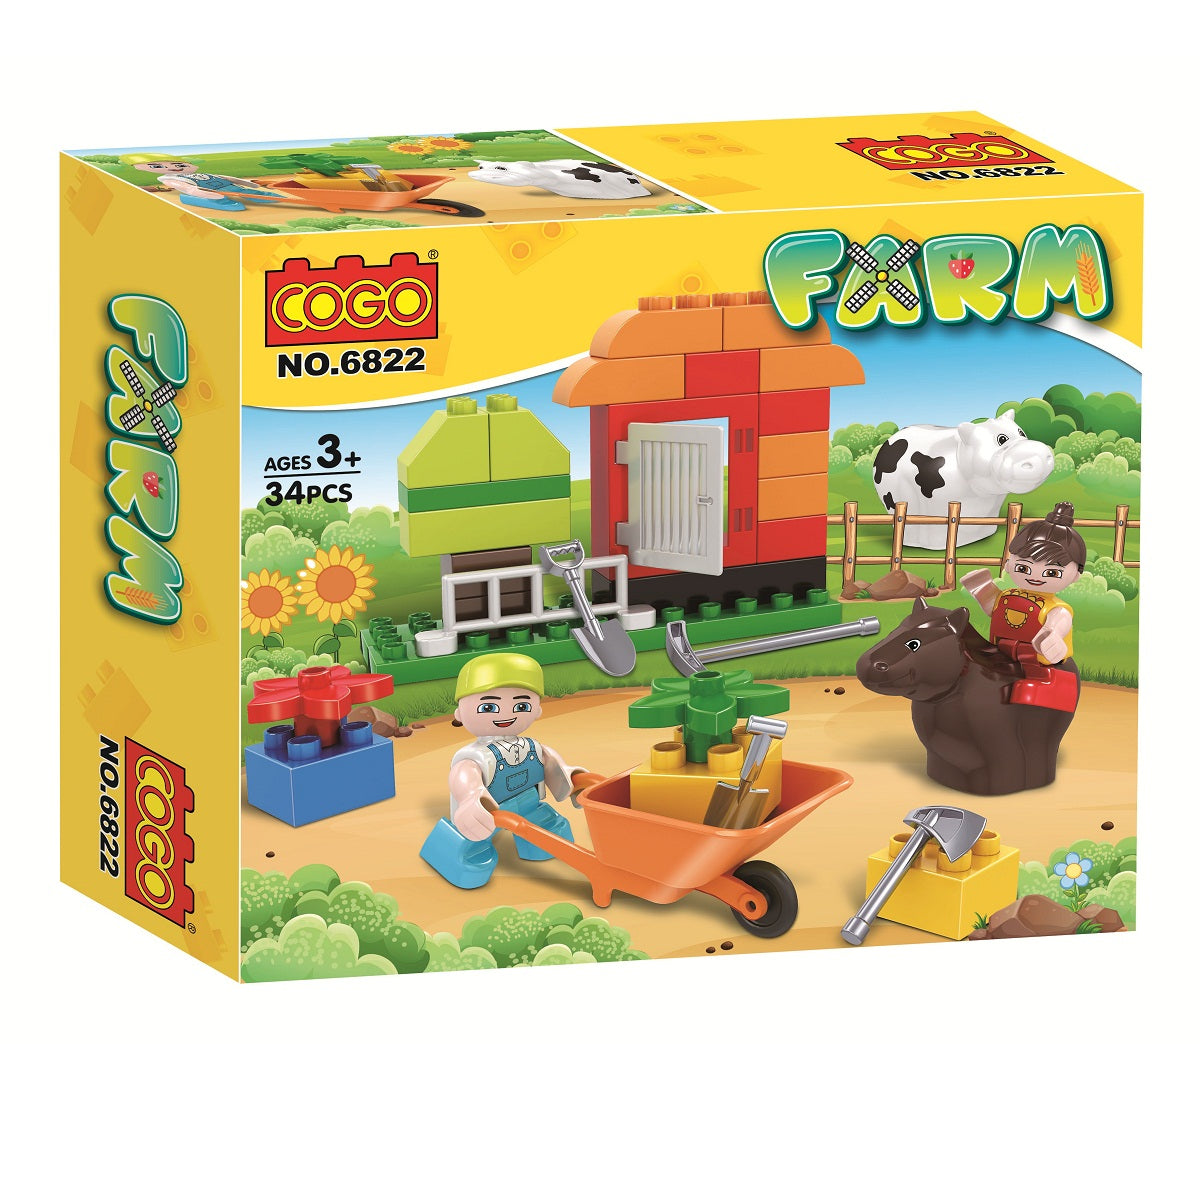 kids learning blocks and bricks toys-2